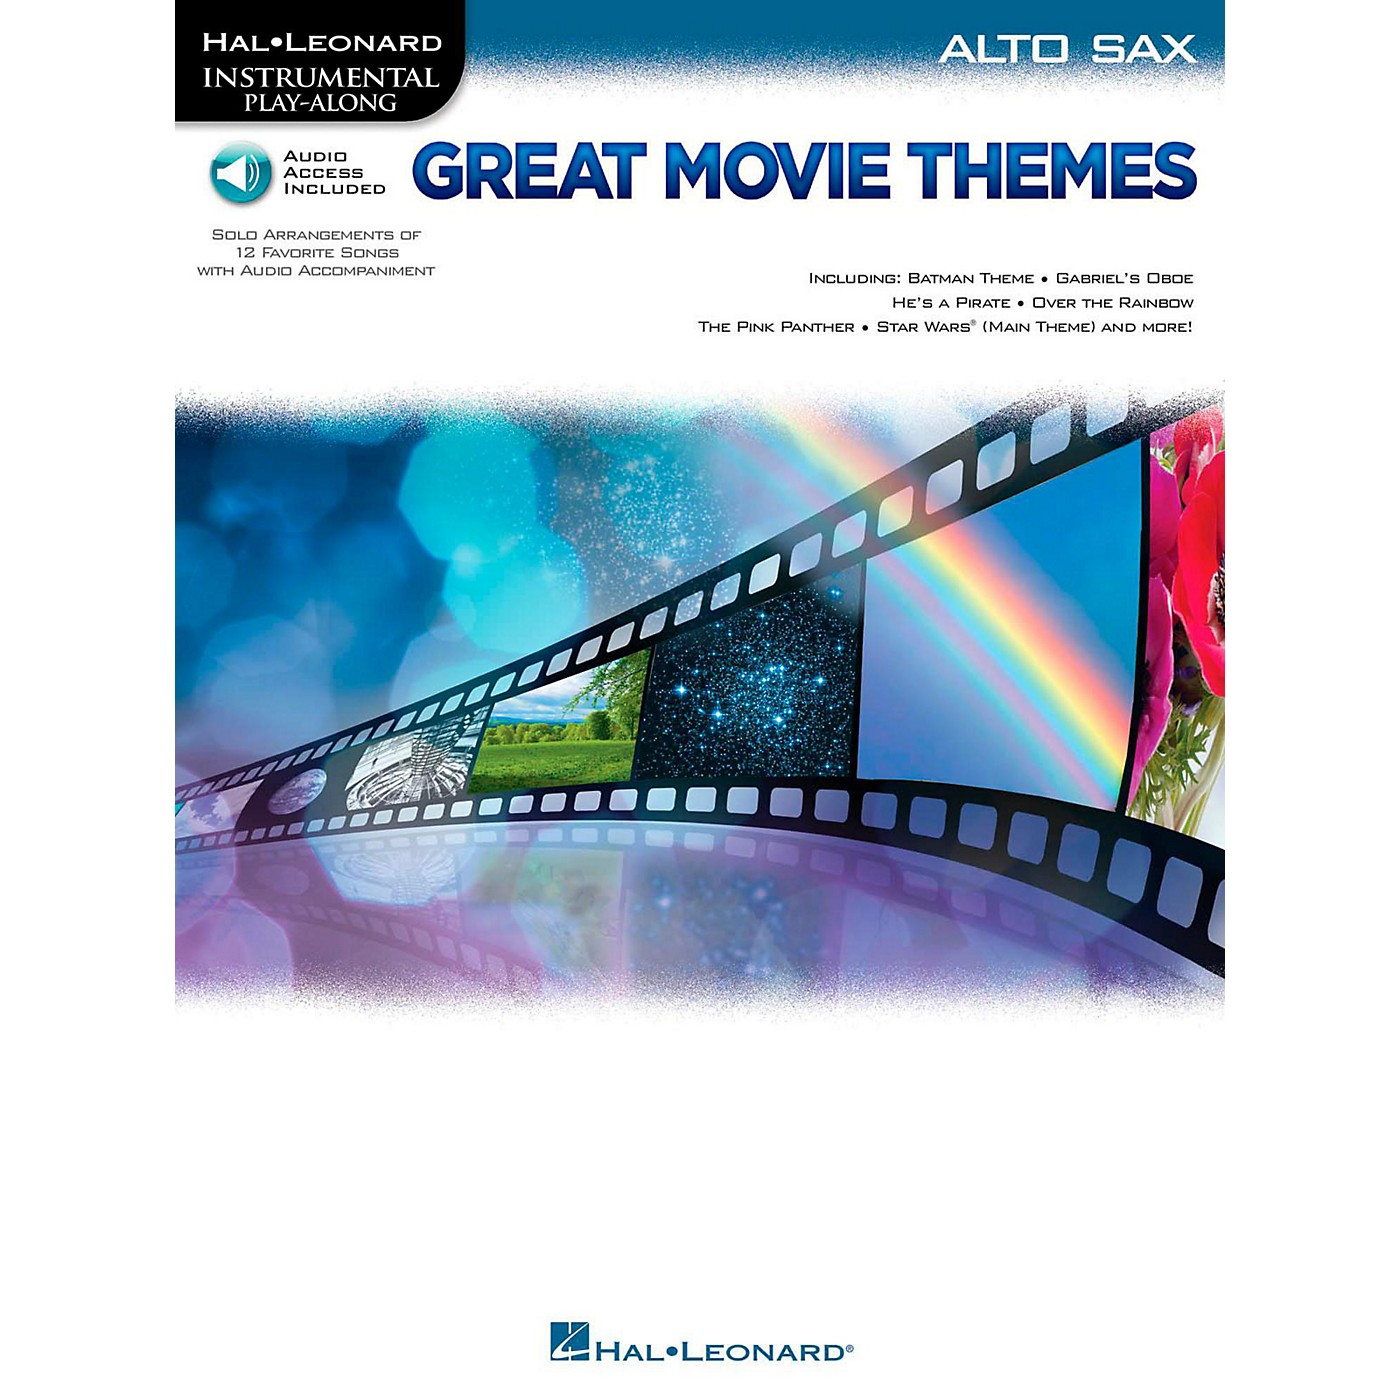 Hal Leonard Great Movie Themes For Alto Sax - Instrumental Play-Along (Book/Online Audio) thumbnail